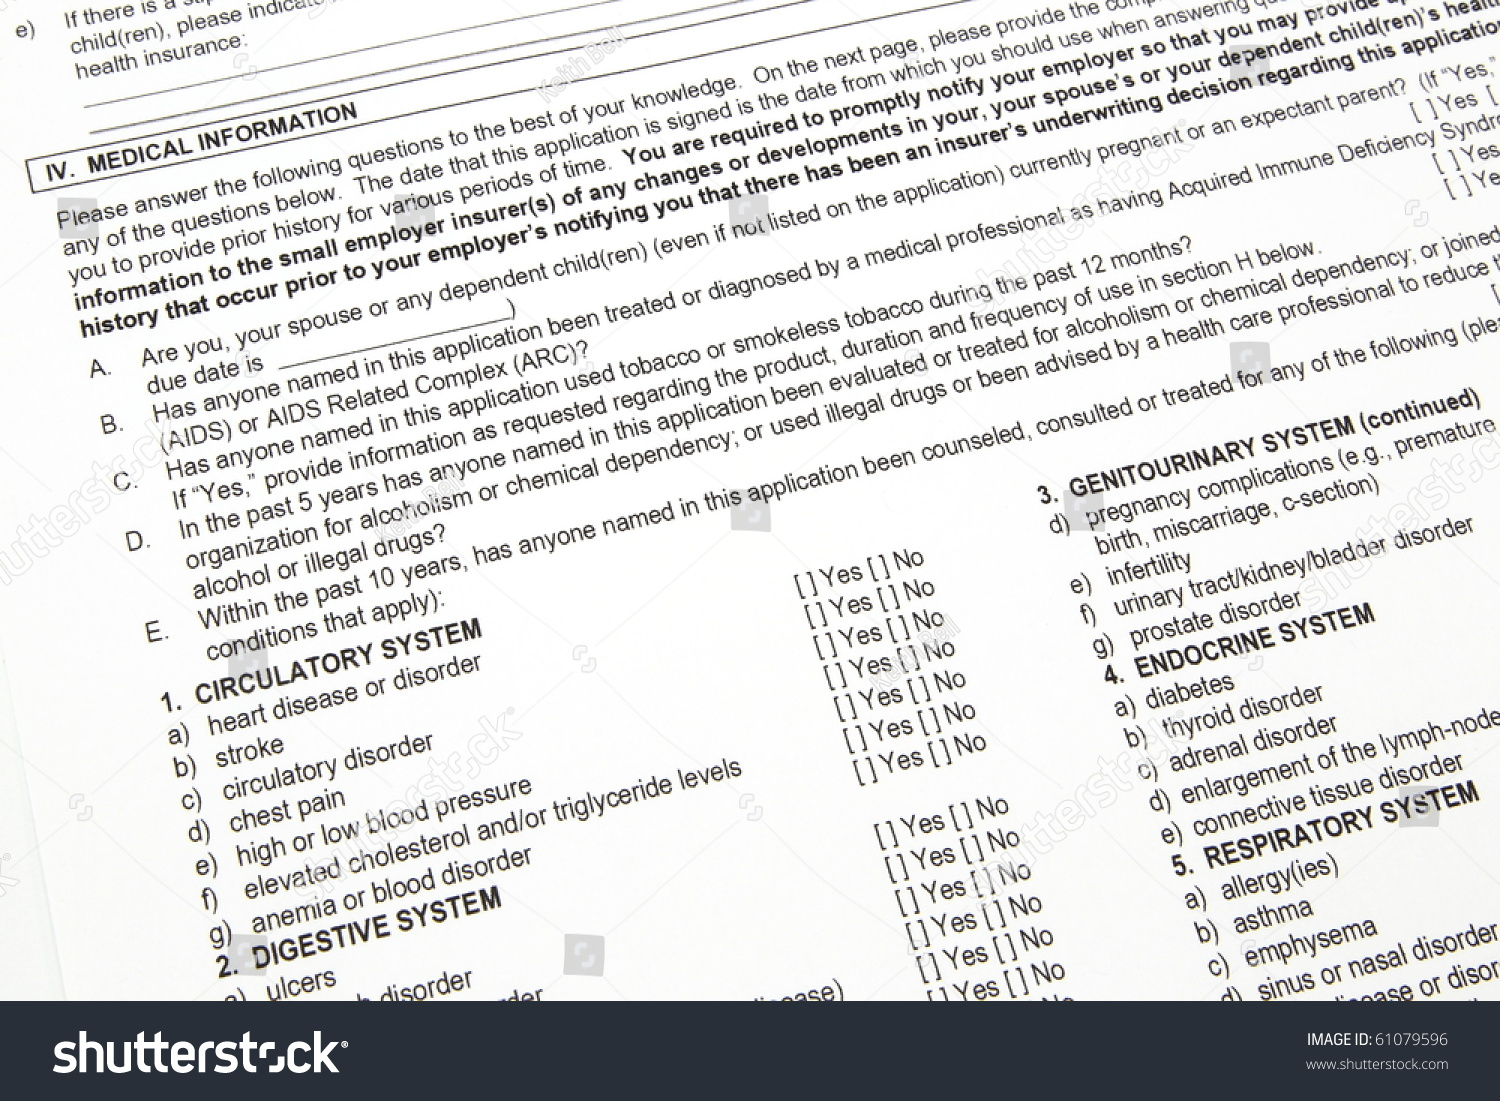 a health insurance application medical information section ready save to a lightbox